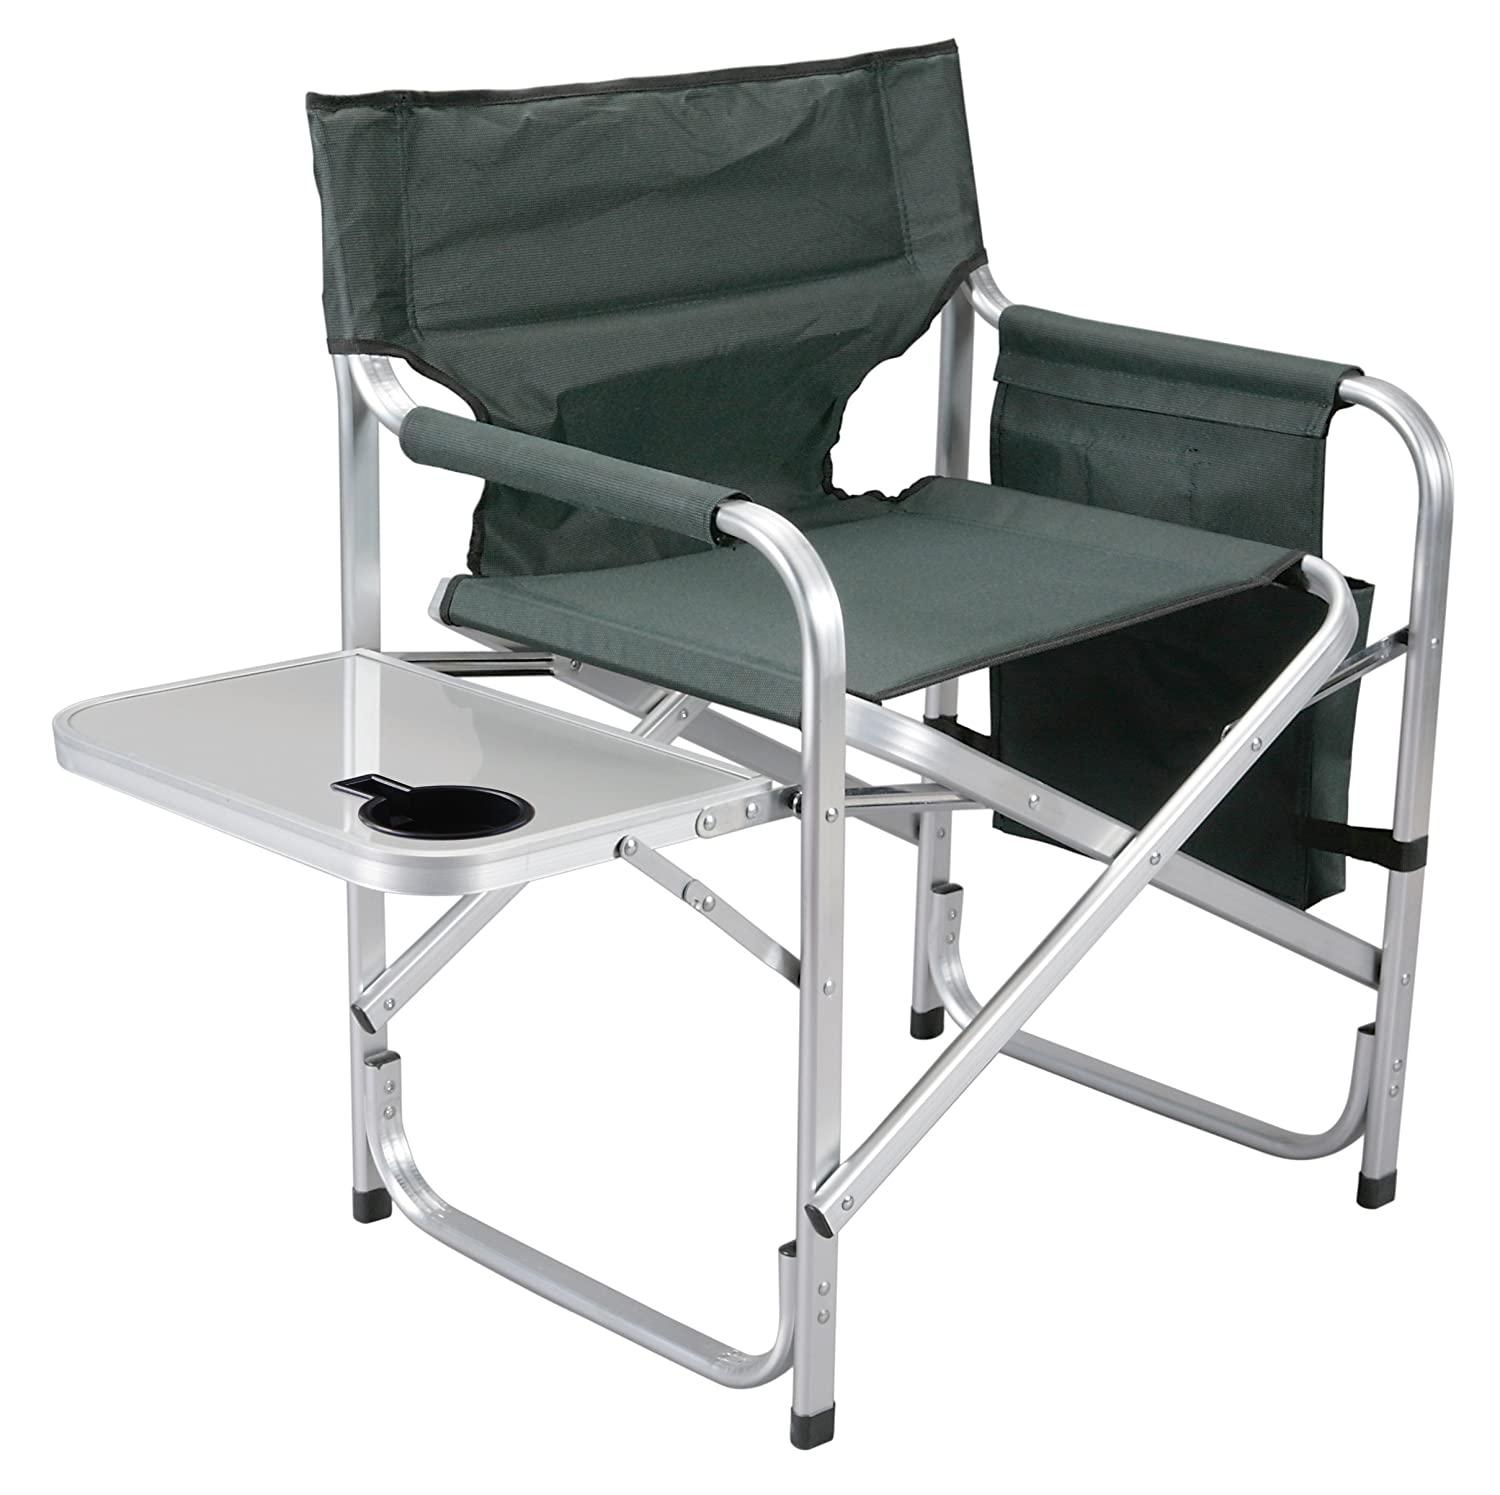 Faulkner Aluminum Director Chair with Folding Tray and Cup Holder